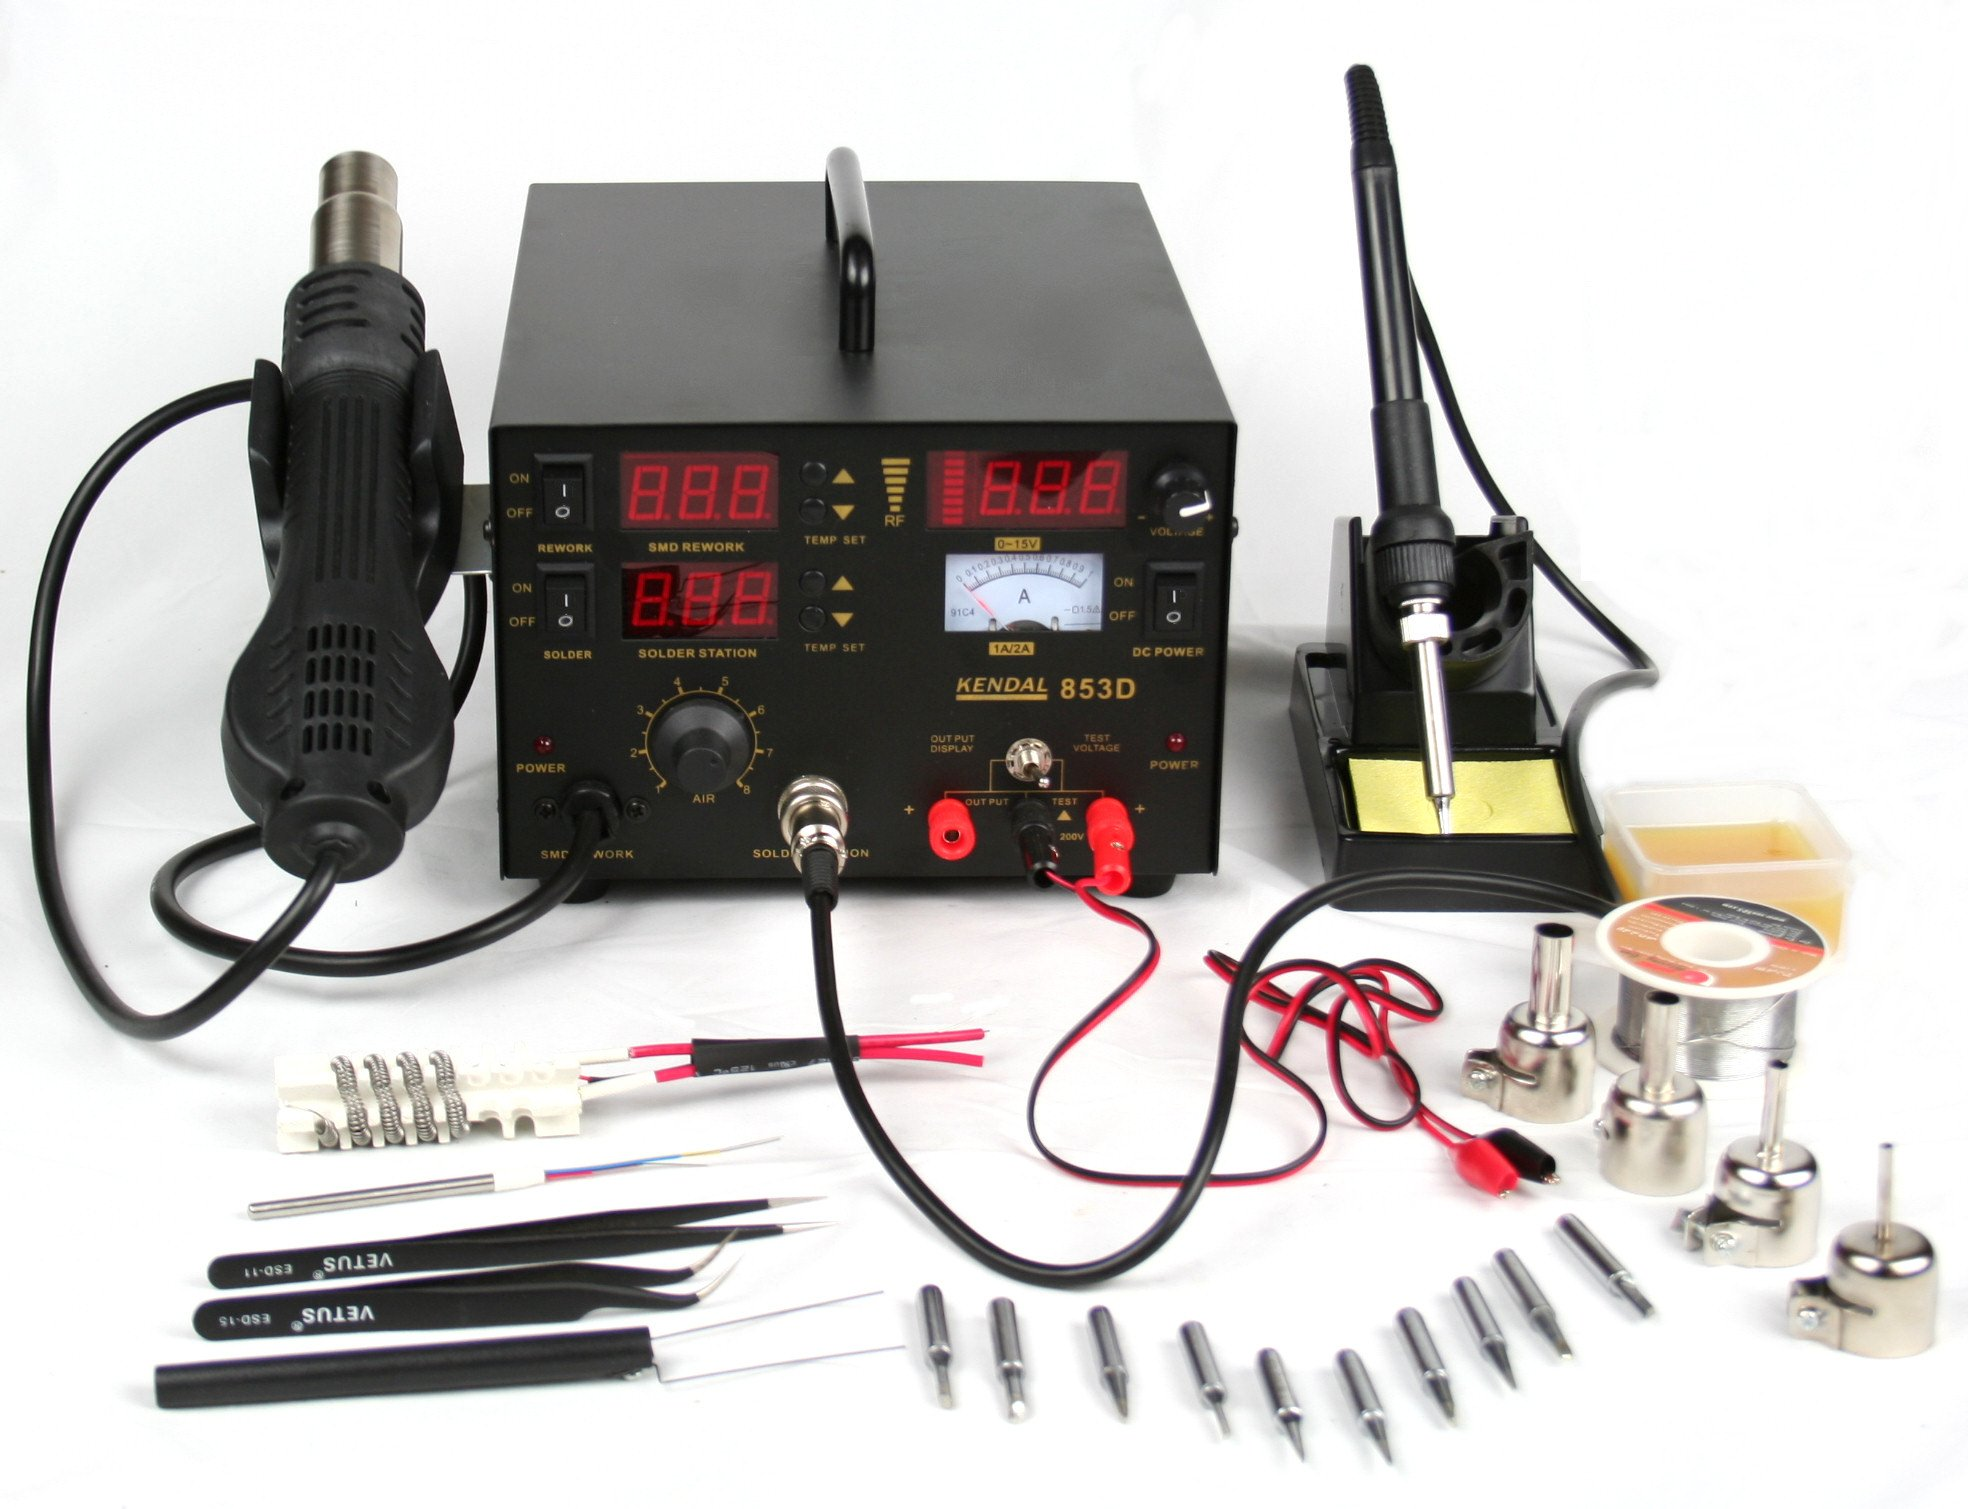 Kendal 853D 4 IN 1 SMD HOT AIR REWORK & SOLDERING IRON STATION / DC POWER SUPPLY & DC TEST METER